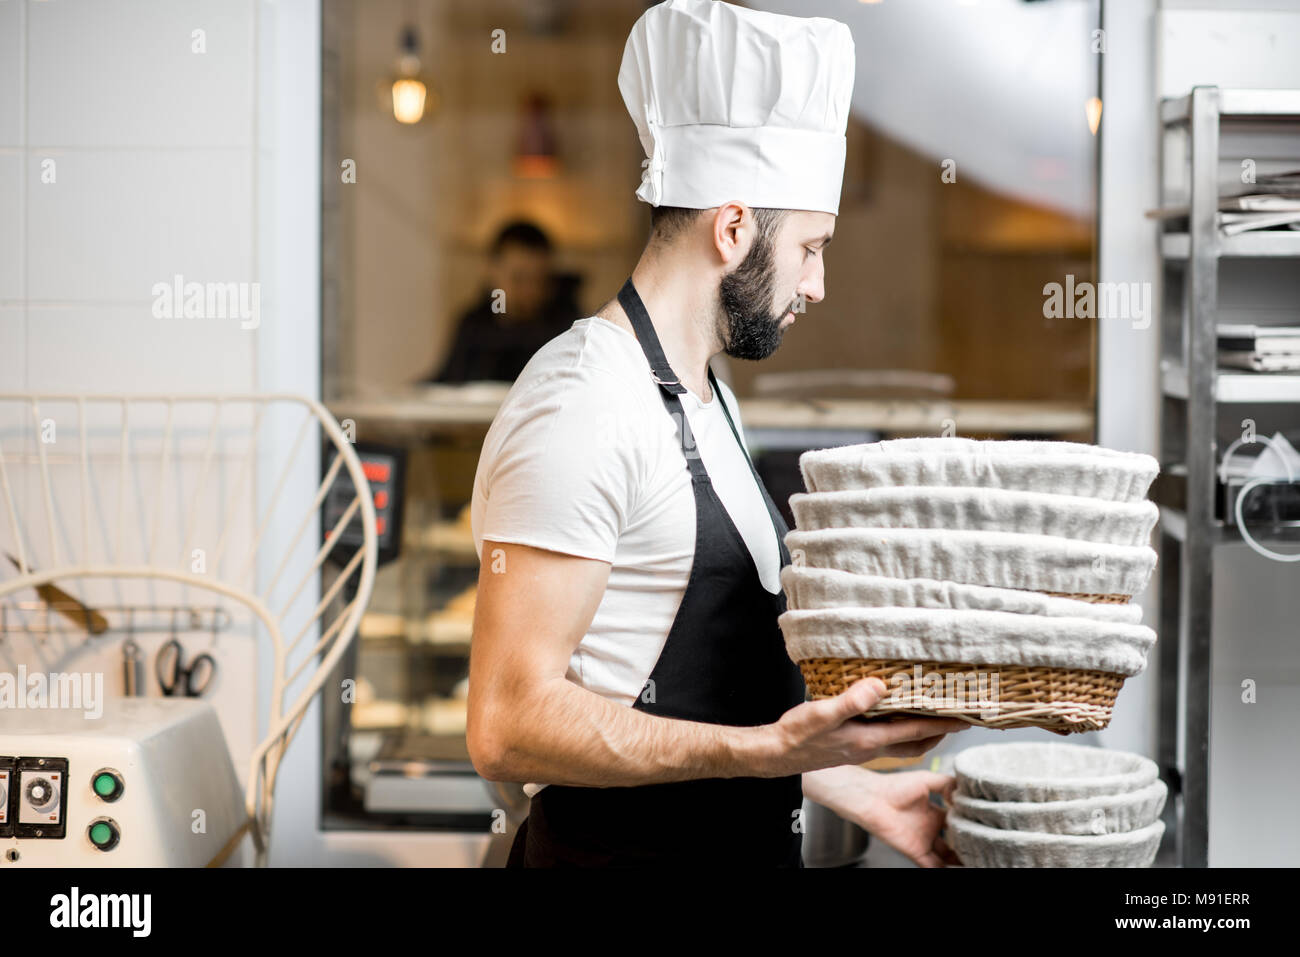 Baker with baking forms at the bakery - Stock Image